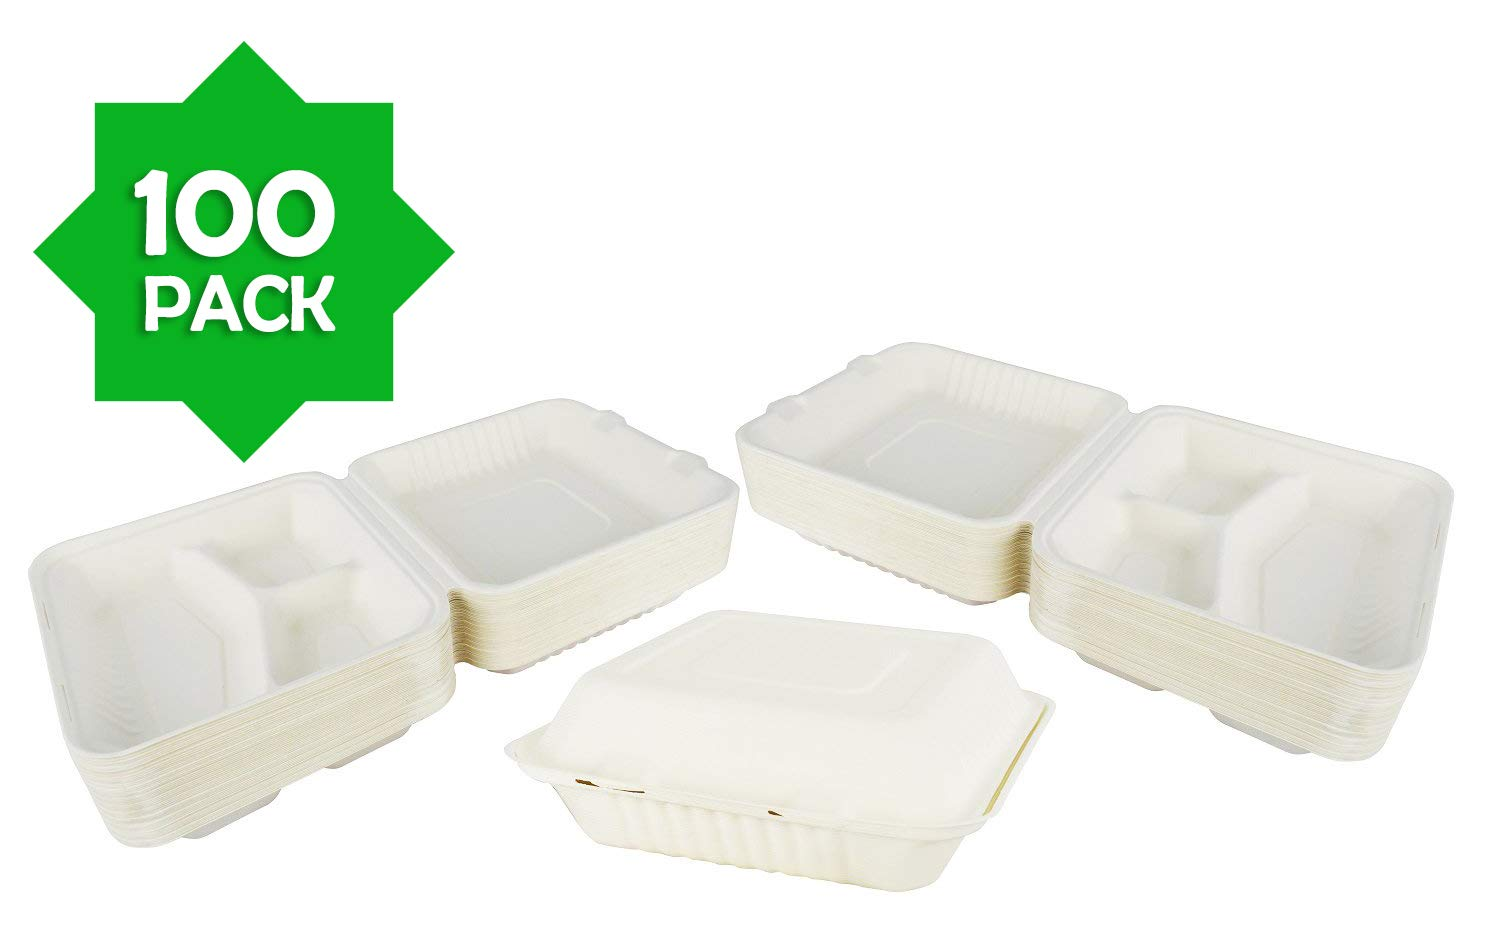 Green Earth 9-Inch, 100-Count, 3-Compartment, Compostable Clamshell, Natural Bagasse (Sugarcane Fiber), Take-Out/To-Go Food Boxes - Biodegradable Containers, Hinged Lid - Microwave-Safe - Gluten-Free by Green Earth